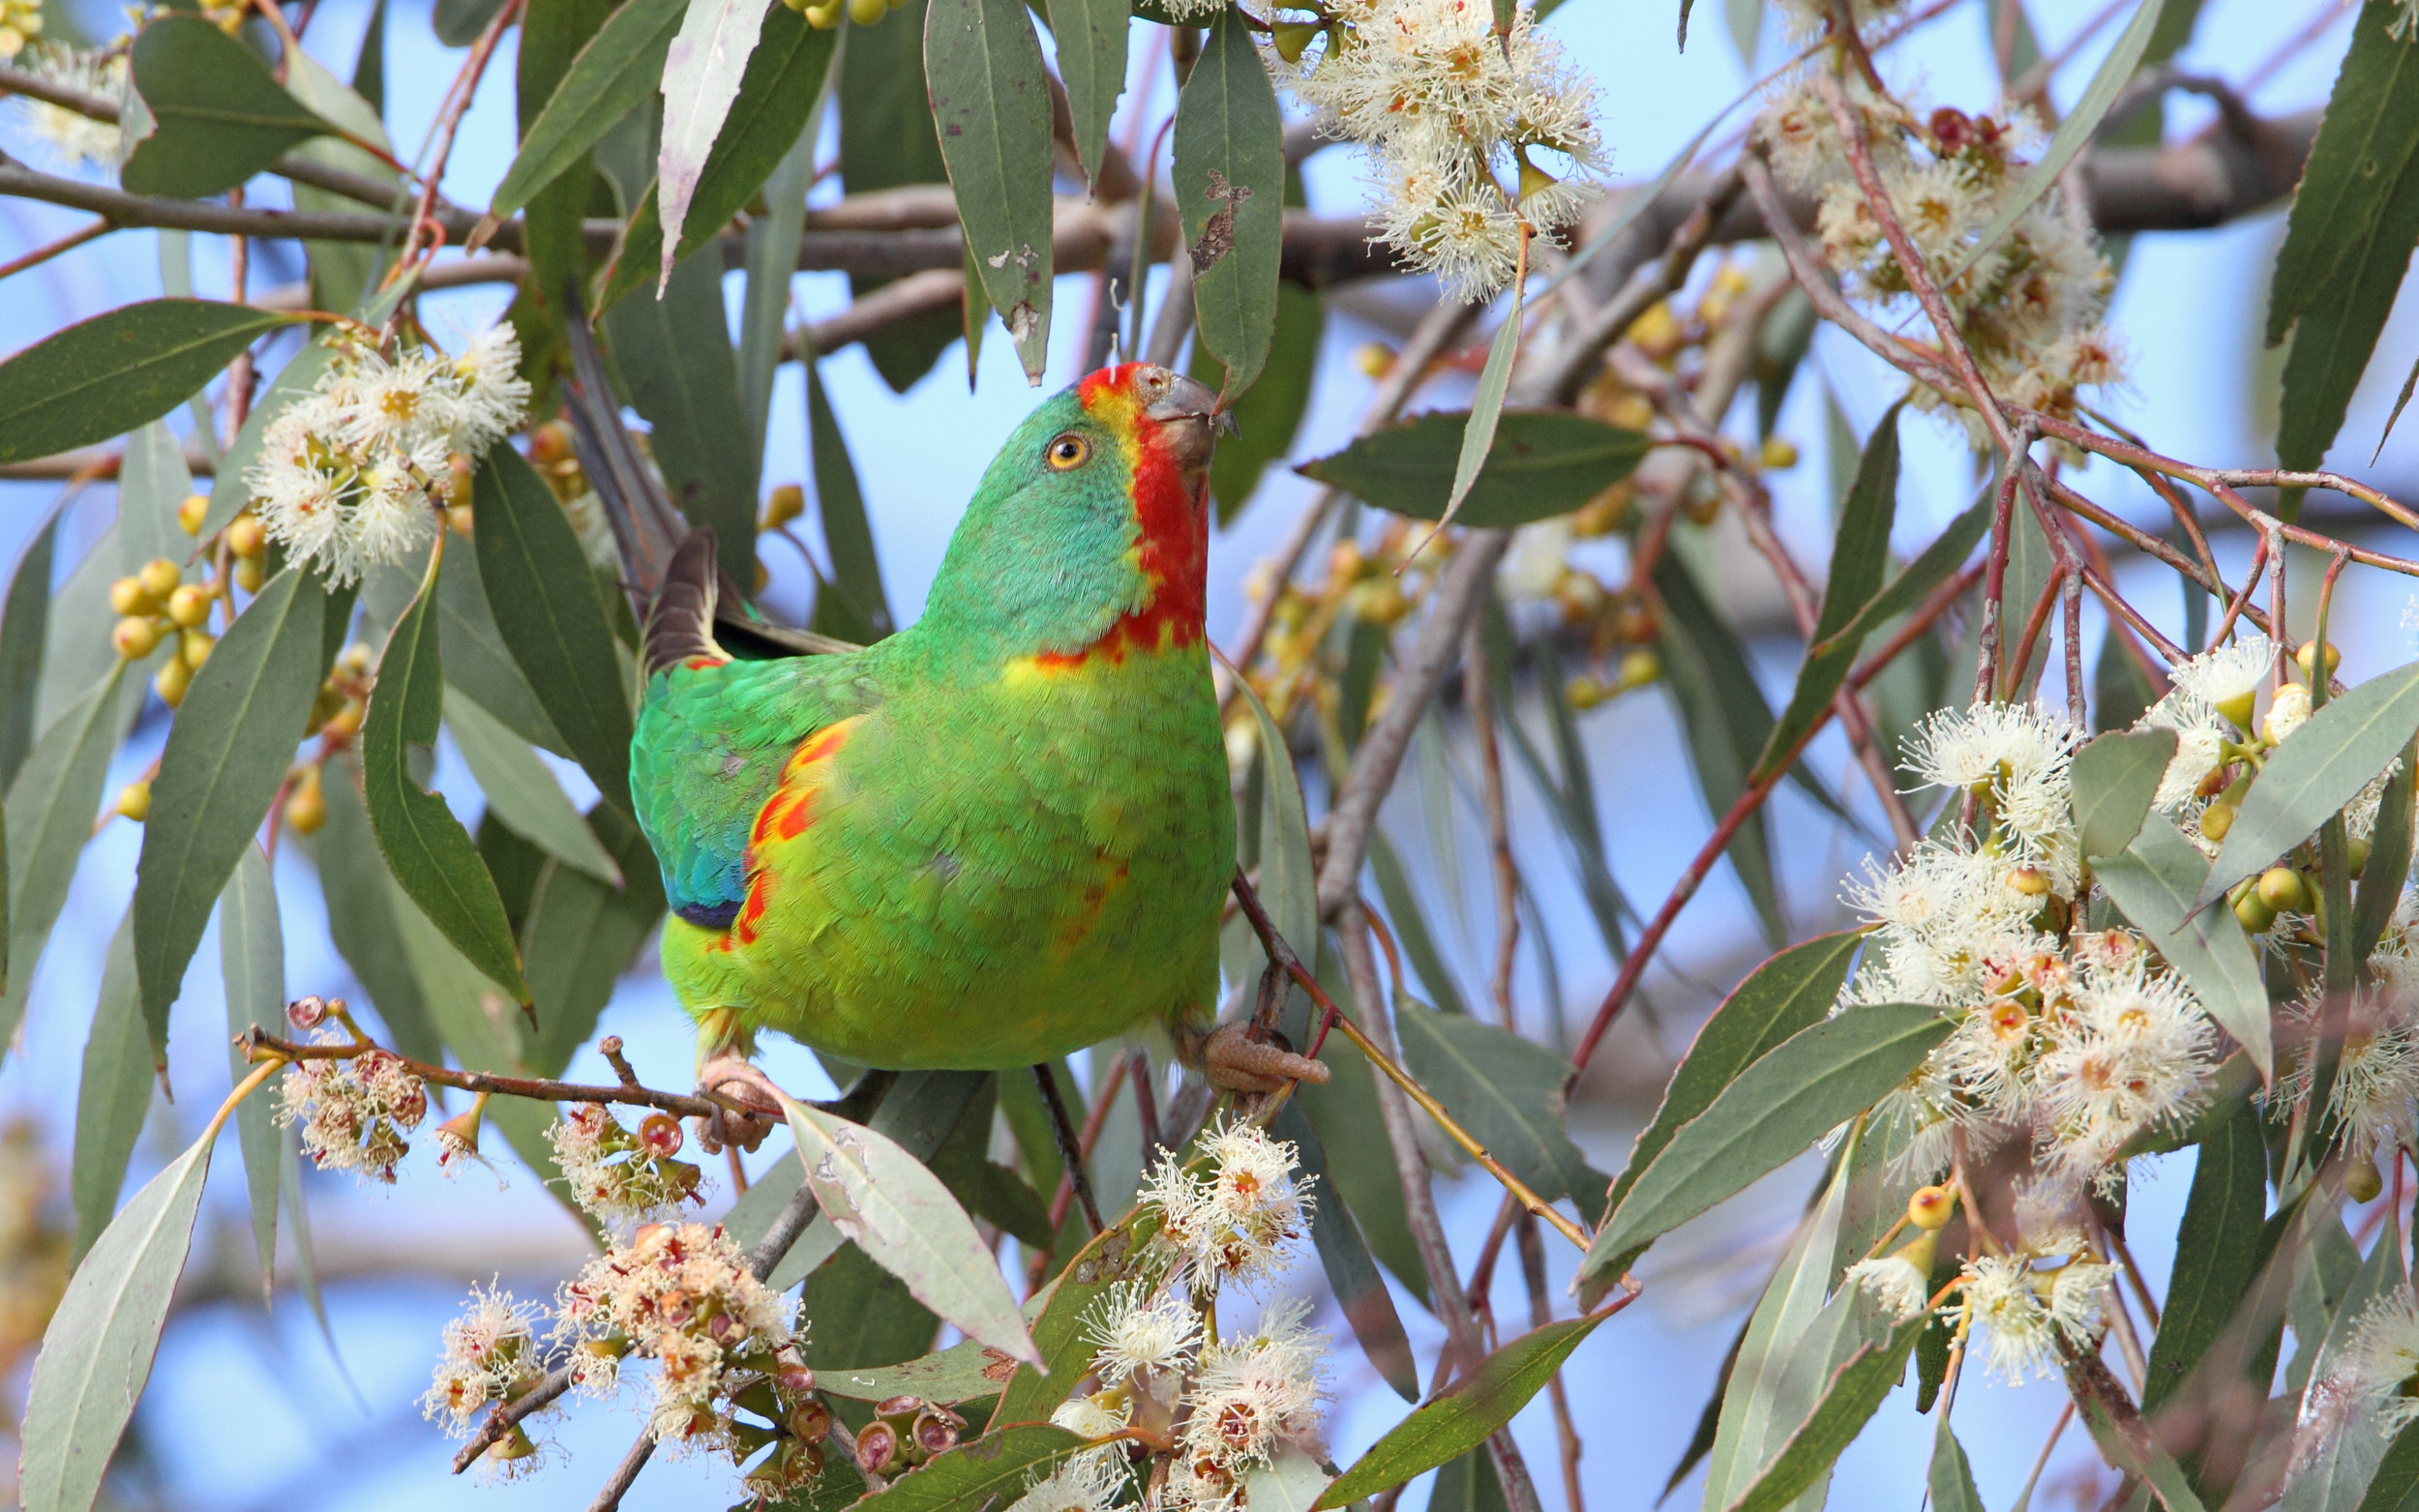 - Unfortunately, Bruny Island is threatened by ongoing deforestation. The destruction of habitat by forestry activities is documented in the National Recovery Plan for the species as the main threat to Swift Parrot survival.Nest predation by introduced Sugar Gliders is an issue that many Swift Parrots are facing and is worse in areas where deforestation is severe. However, Bruny Island is Sugar Glider free and reducing the rate of deforestation on the island could ensure the future existence of the Swift Parrot.An agreement between the Tasmanian and Commonwealth Governments, known as the Regional Forest Agreement (RFA), exempts the Swift Parrot from the Commonwealth's EPBC Act, which is intended to protect nationally Endangered species. This allows the Tasmanian Government to continue logging Swift Parrot breeding habitat. The Tasmanian Government is also planning to accelerate deforestation on the renewal of the RFA in November 2017.